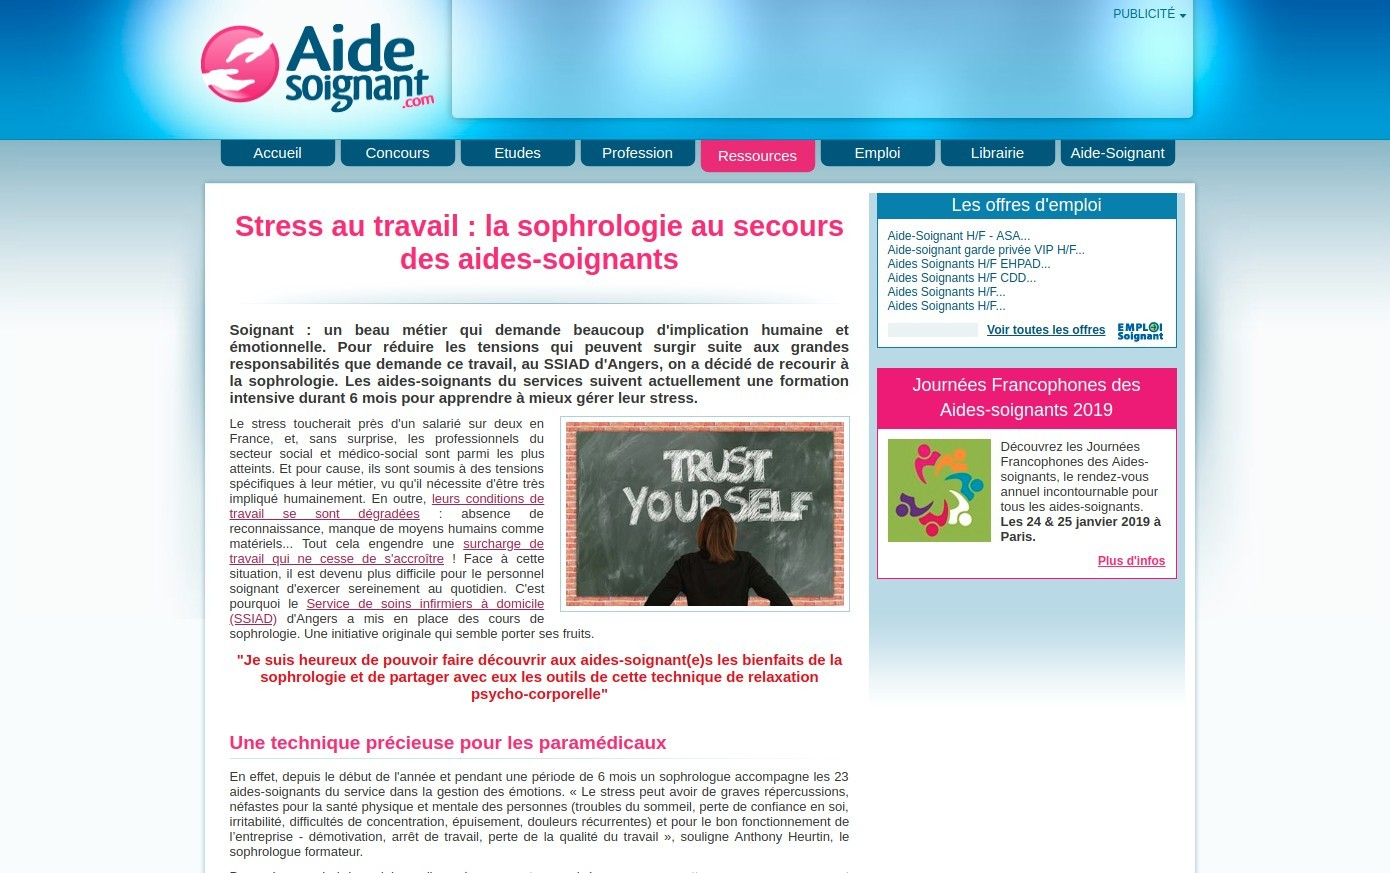 Aide soignant article sophrologie angers stress travail